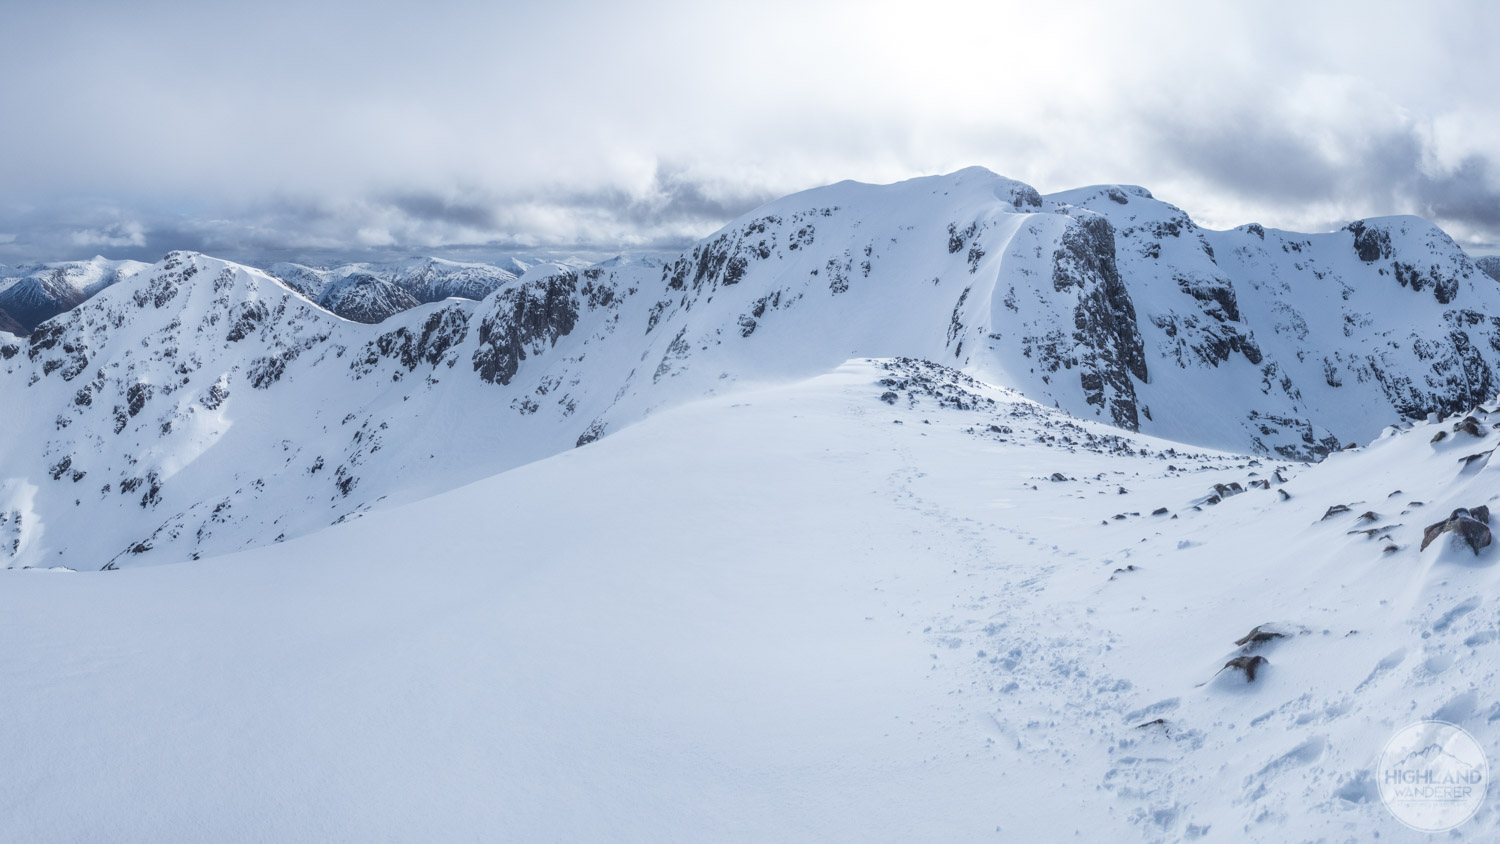 Extensive views back across the whole Bidean nam Bian range from the summit of Stob Coire nan Lochan.